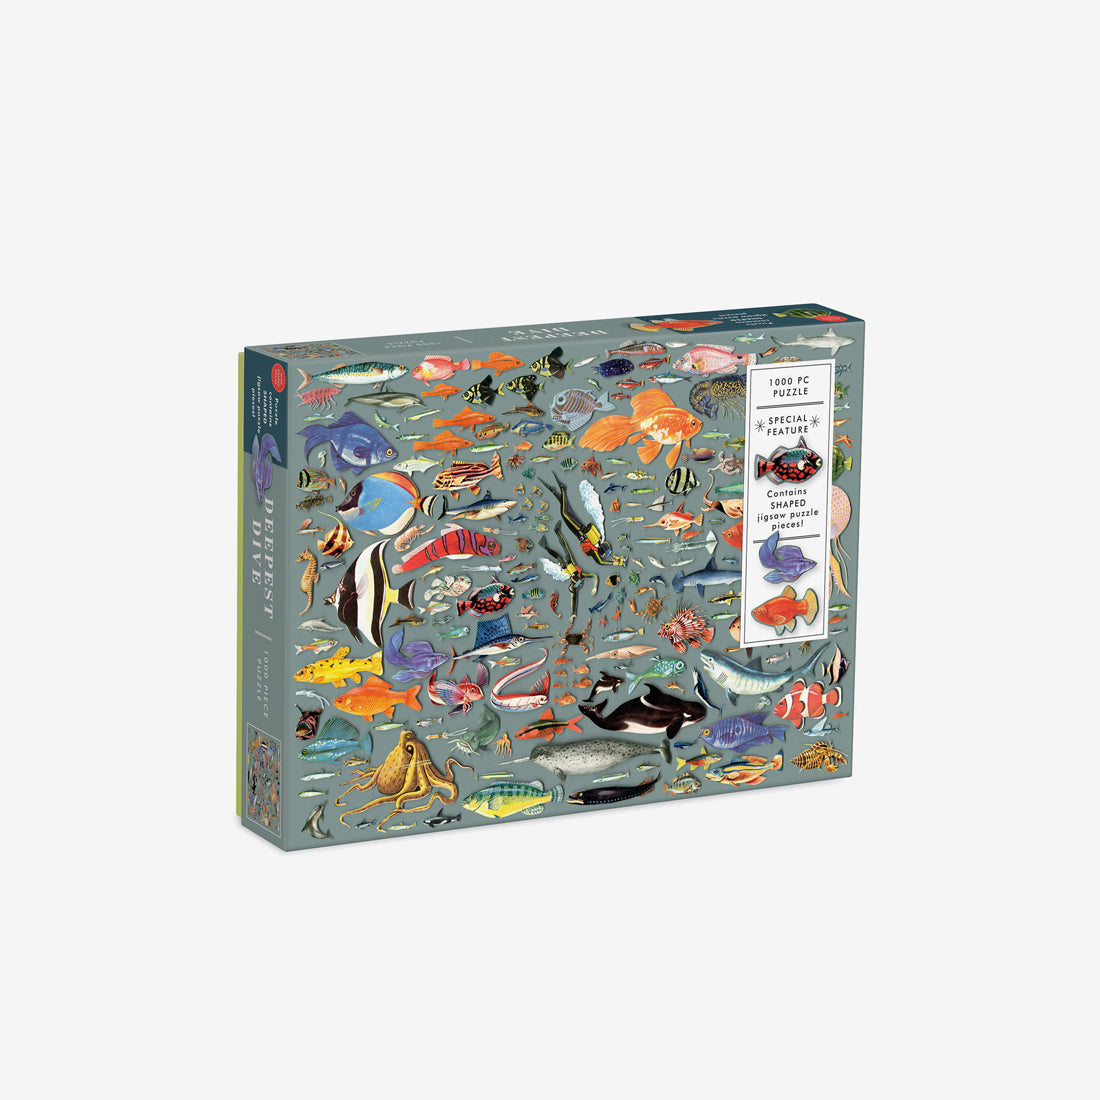 1000-Piece Jigsaw Puzzle with Shaped Pieces - Deepest Dive